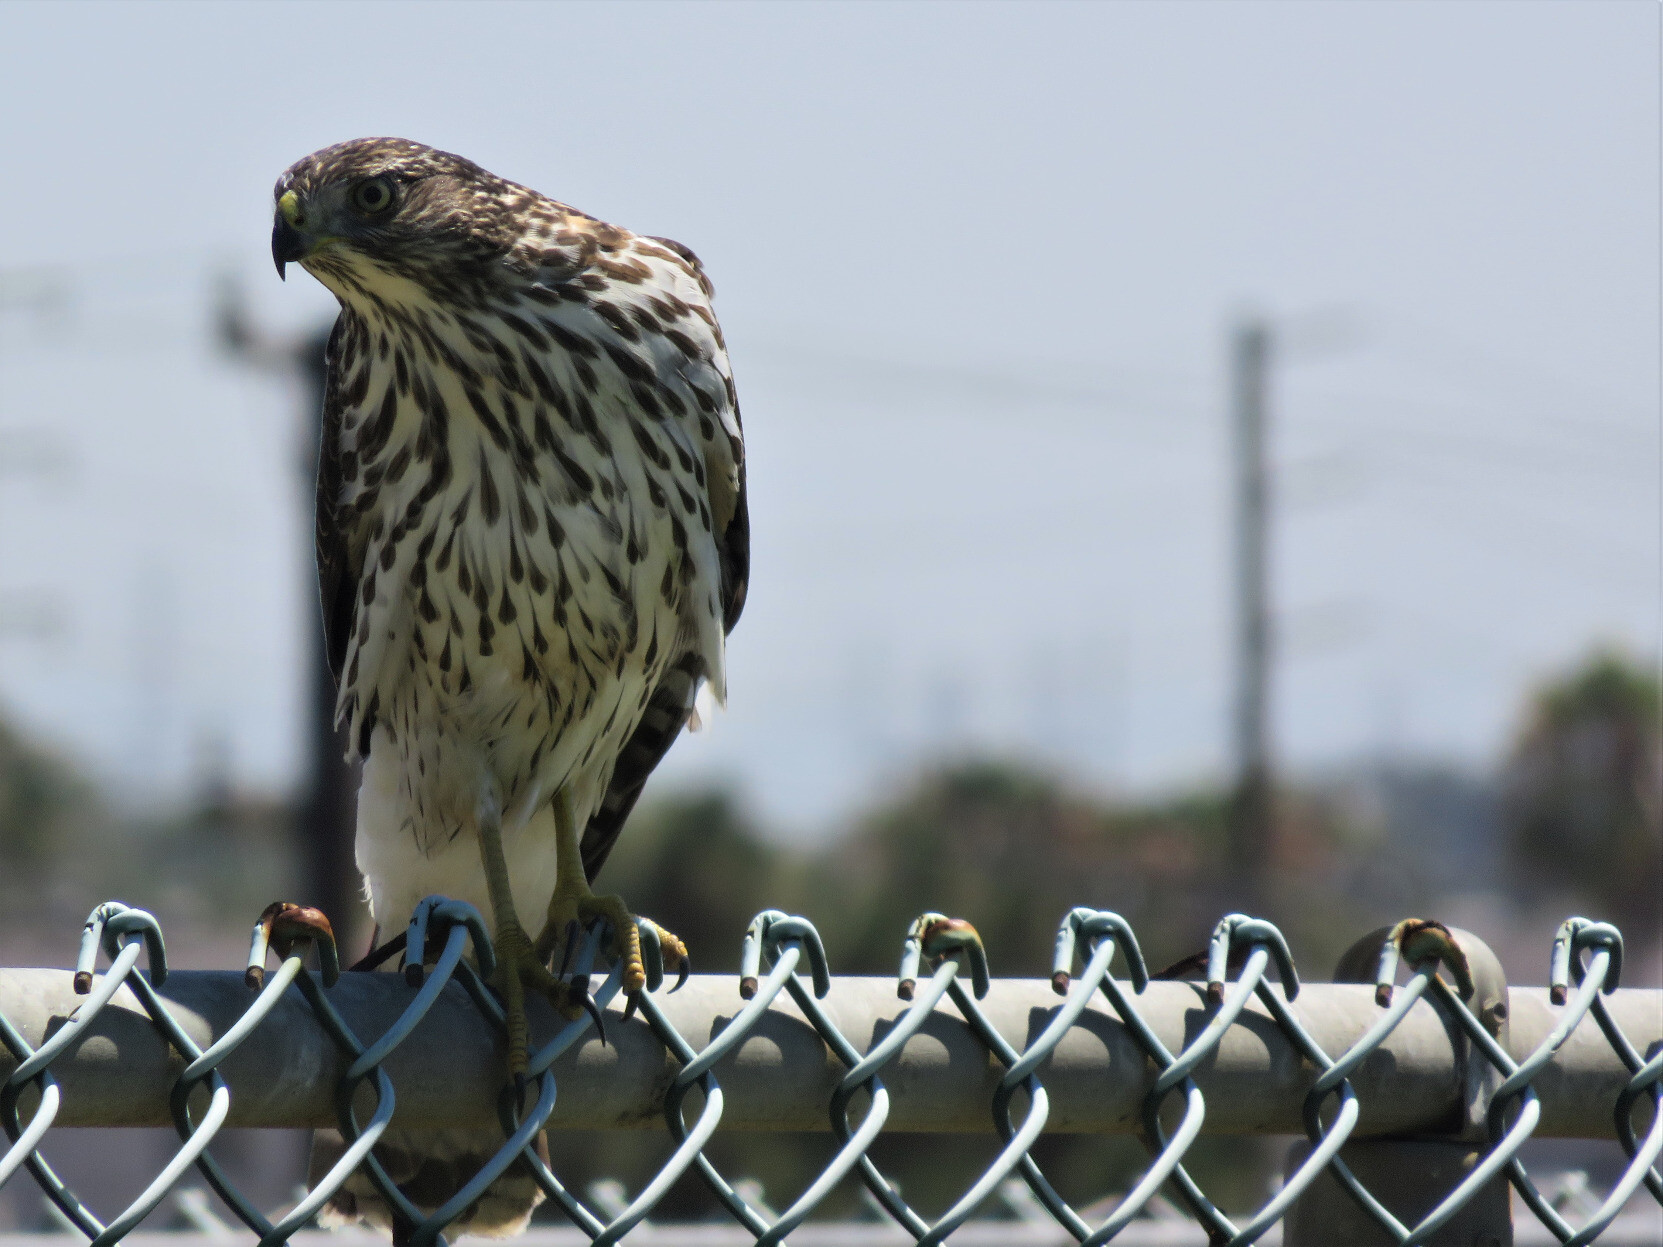 A brown and white hawk perched on a chain link fence, seen roughly on a level, with blurry trees and telephone poles in the background.